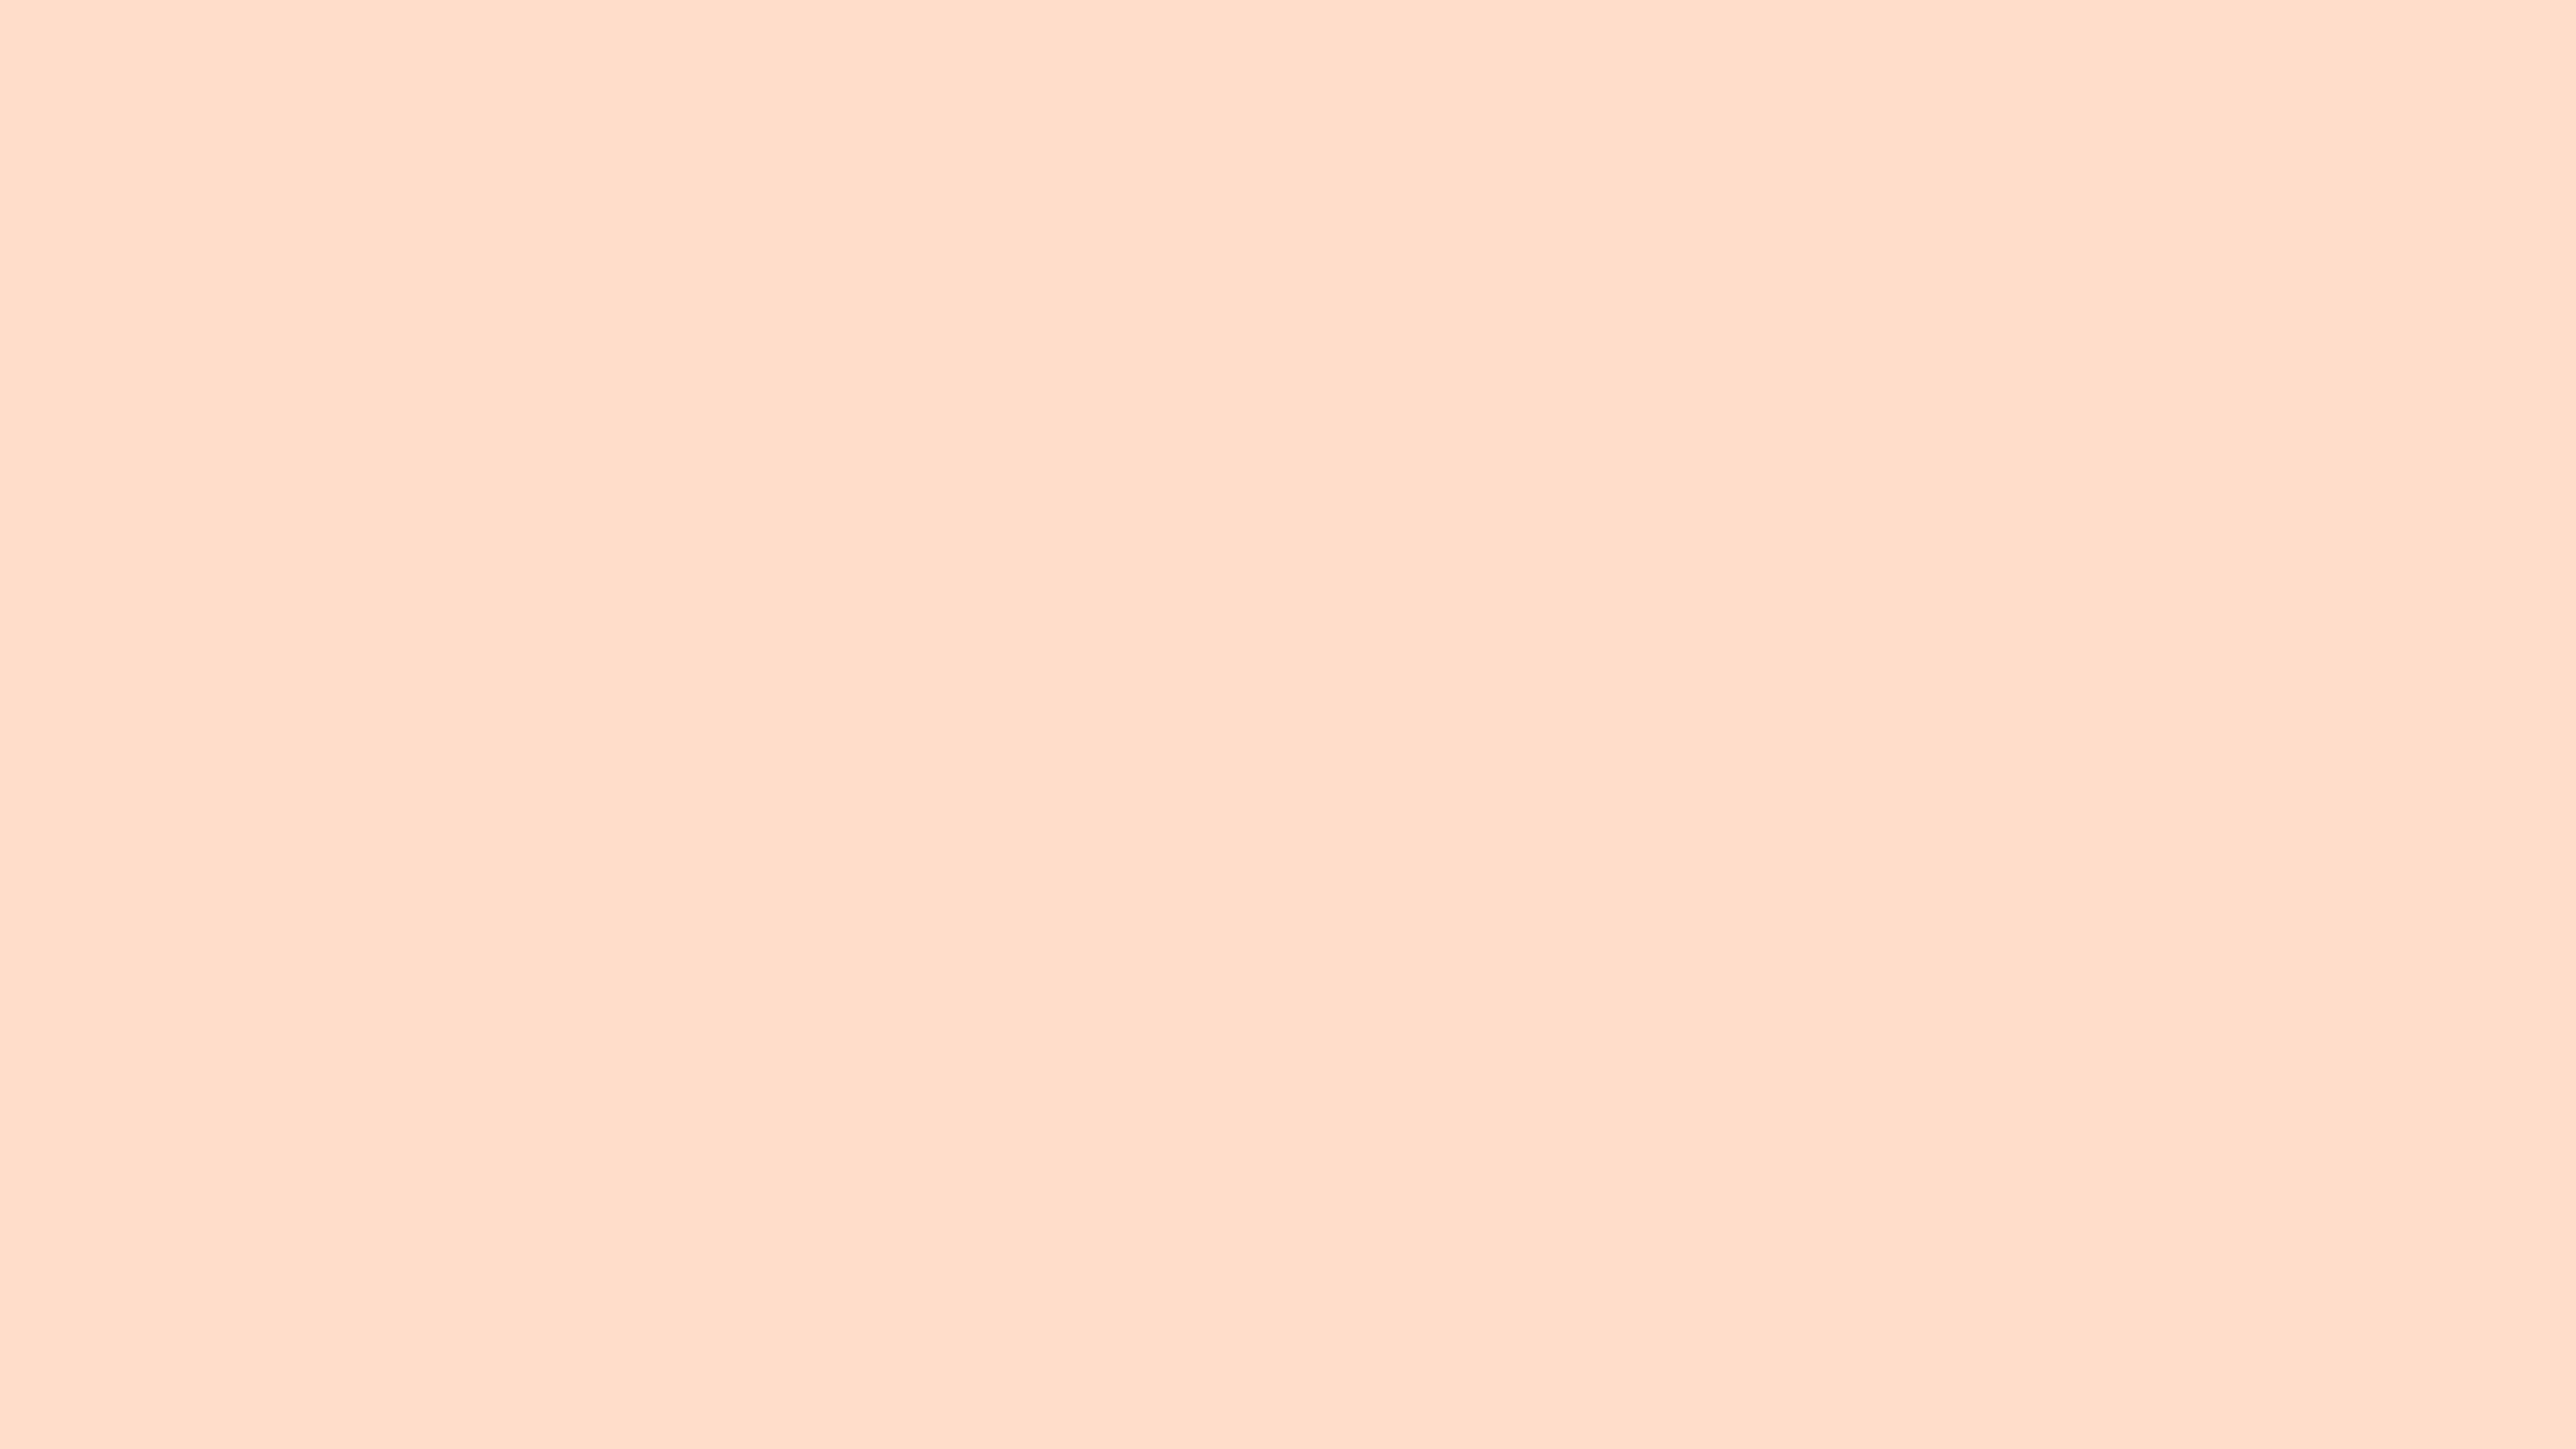 5120x2880 Unbleached Silk Solid Color Background